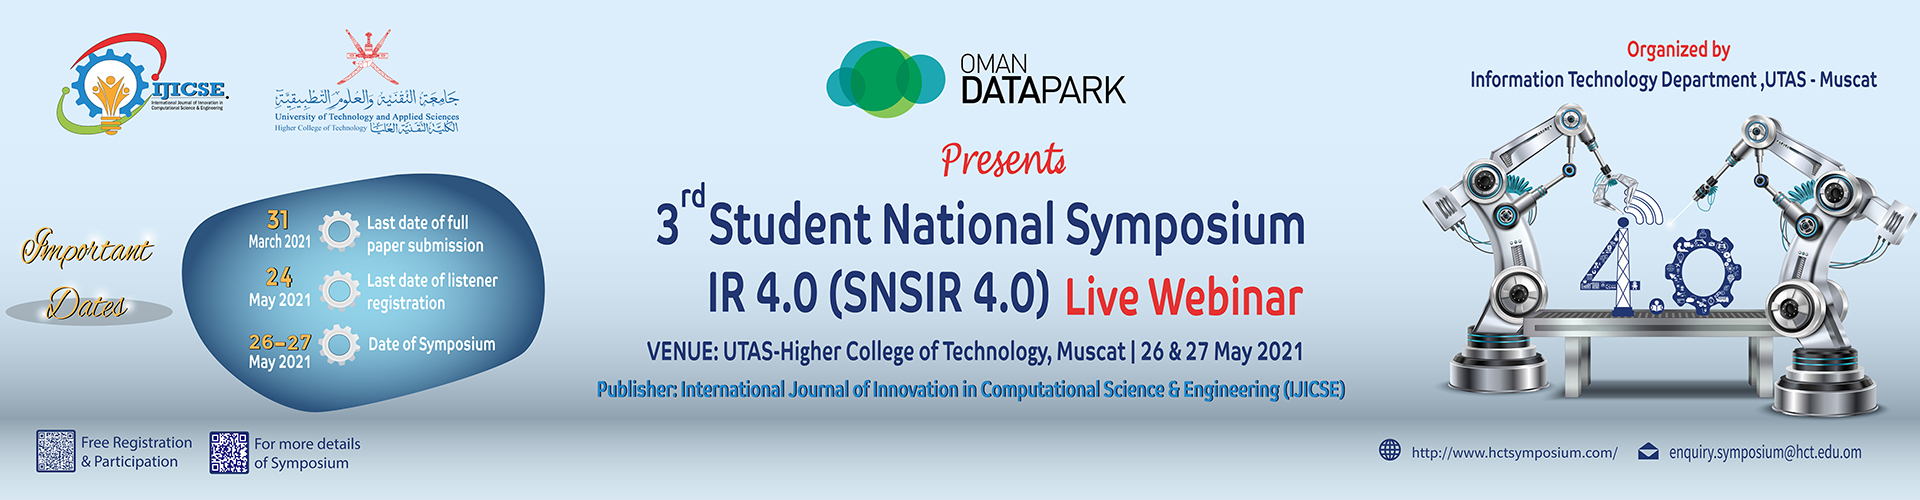 IT - 3rd Student National Symposium